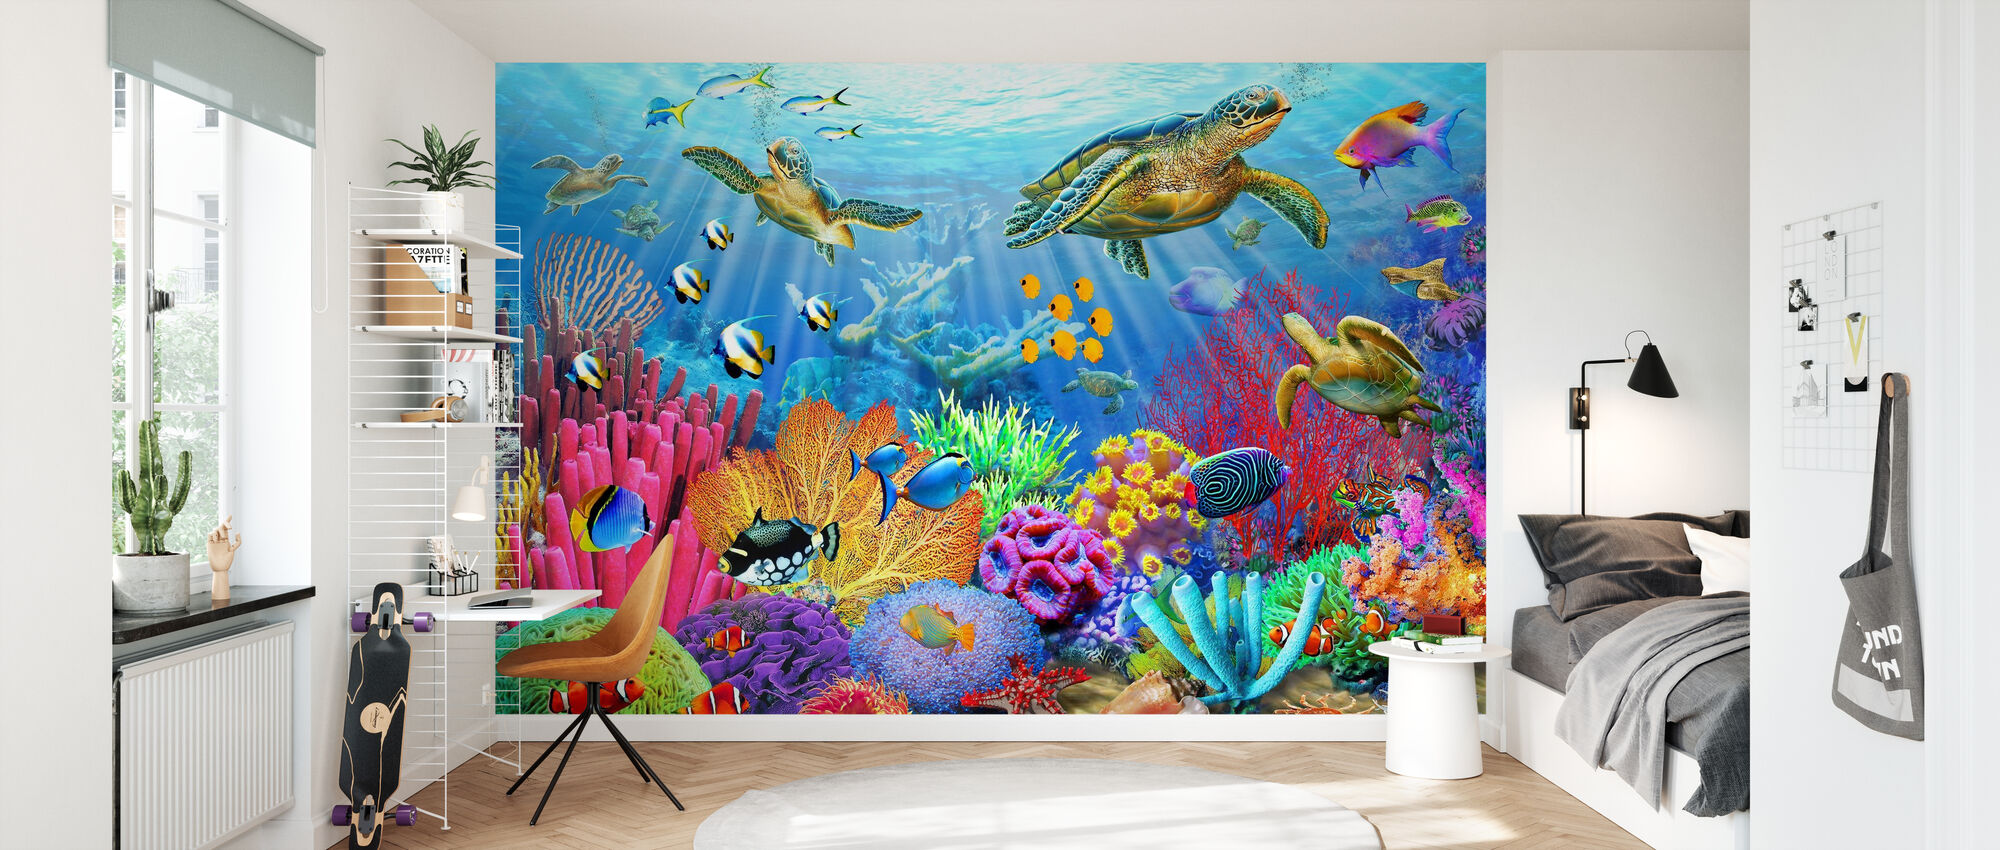 Turtle Coral Reef - Wallpaper - Kids Room